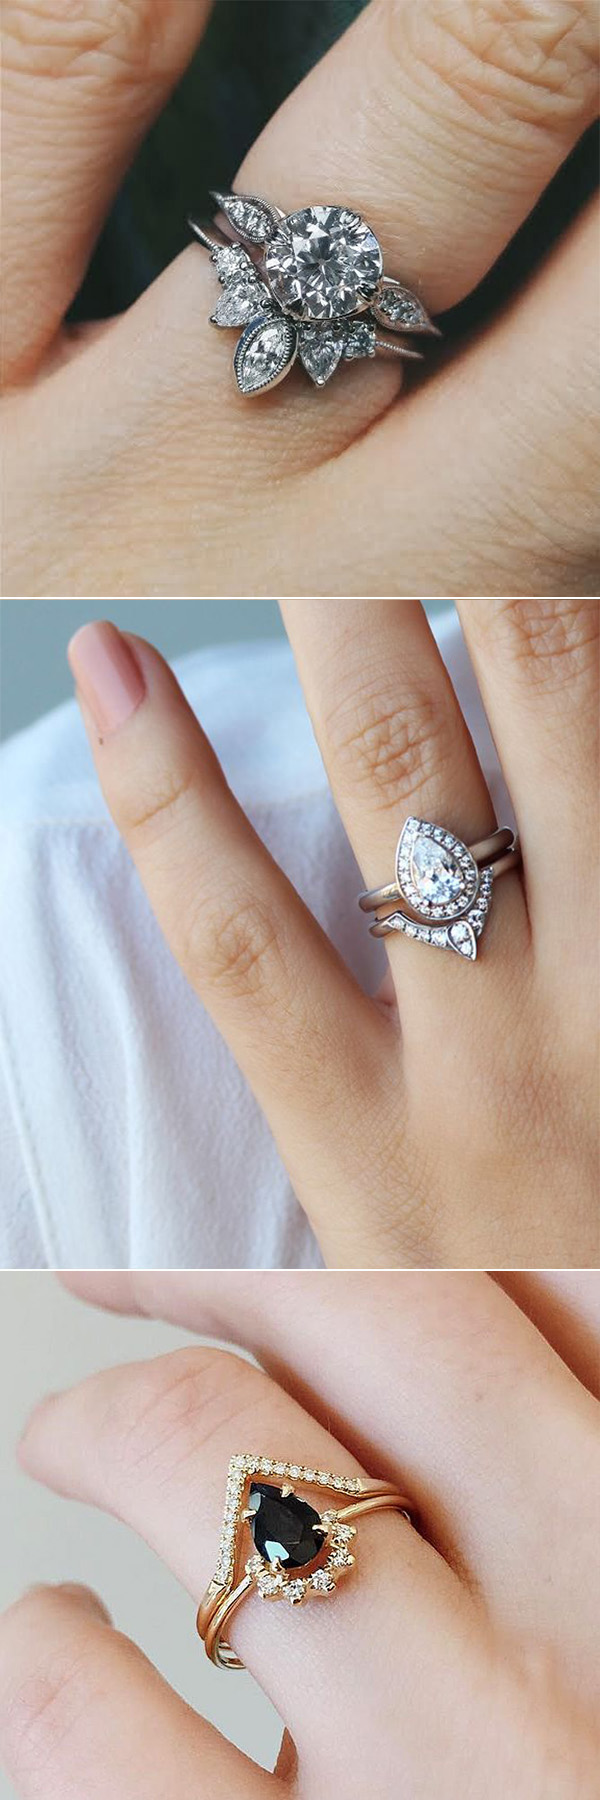 unique engagement rings for lovley brides